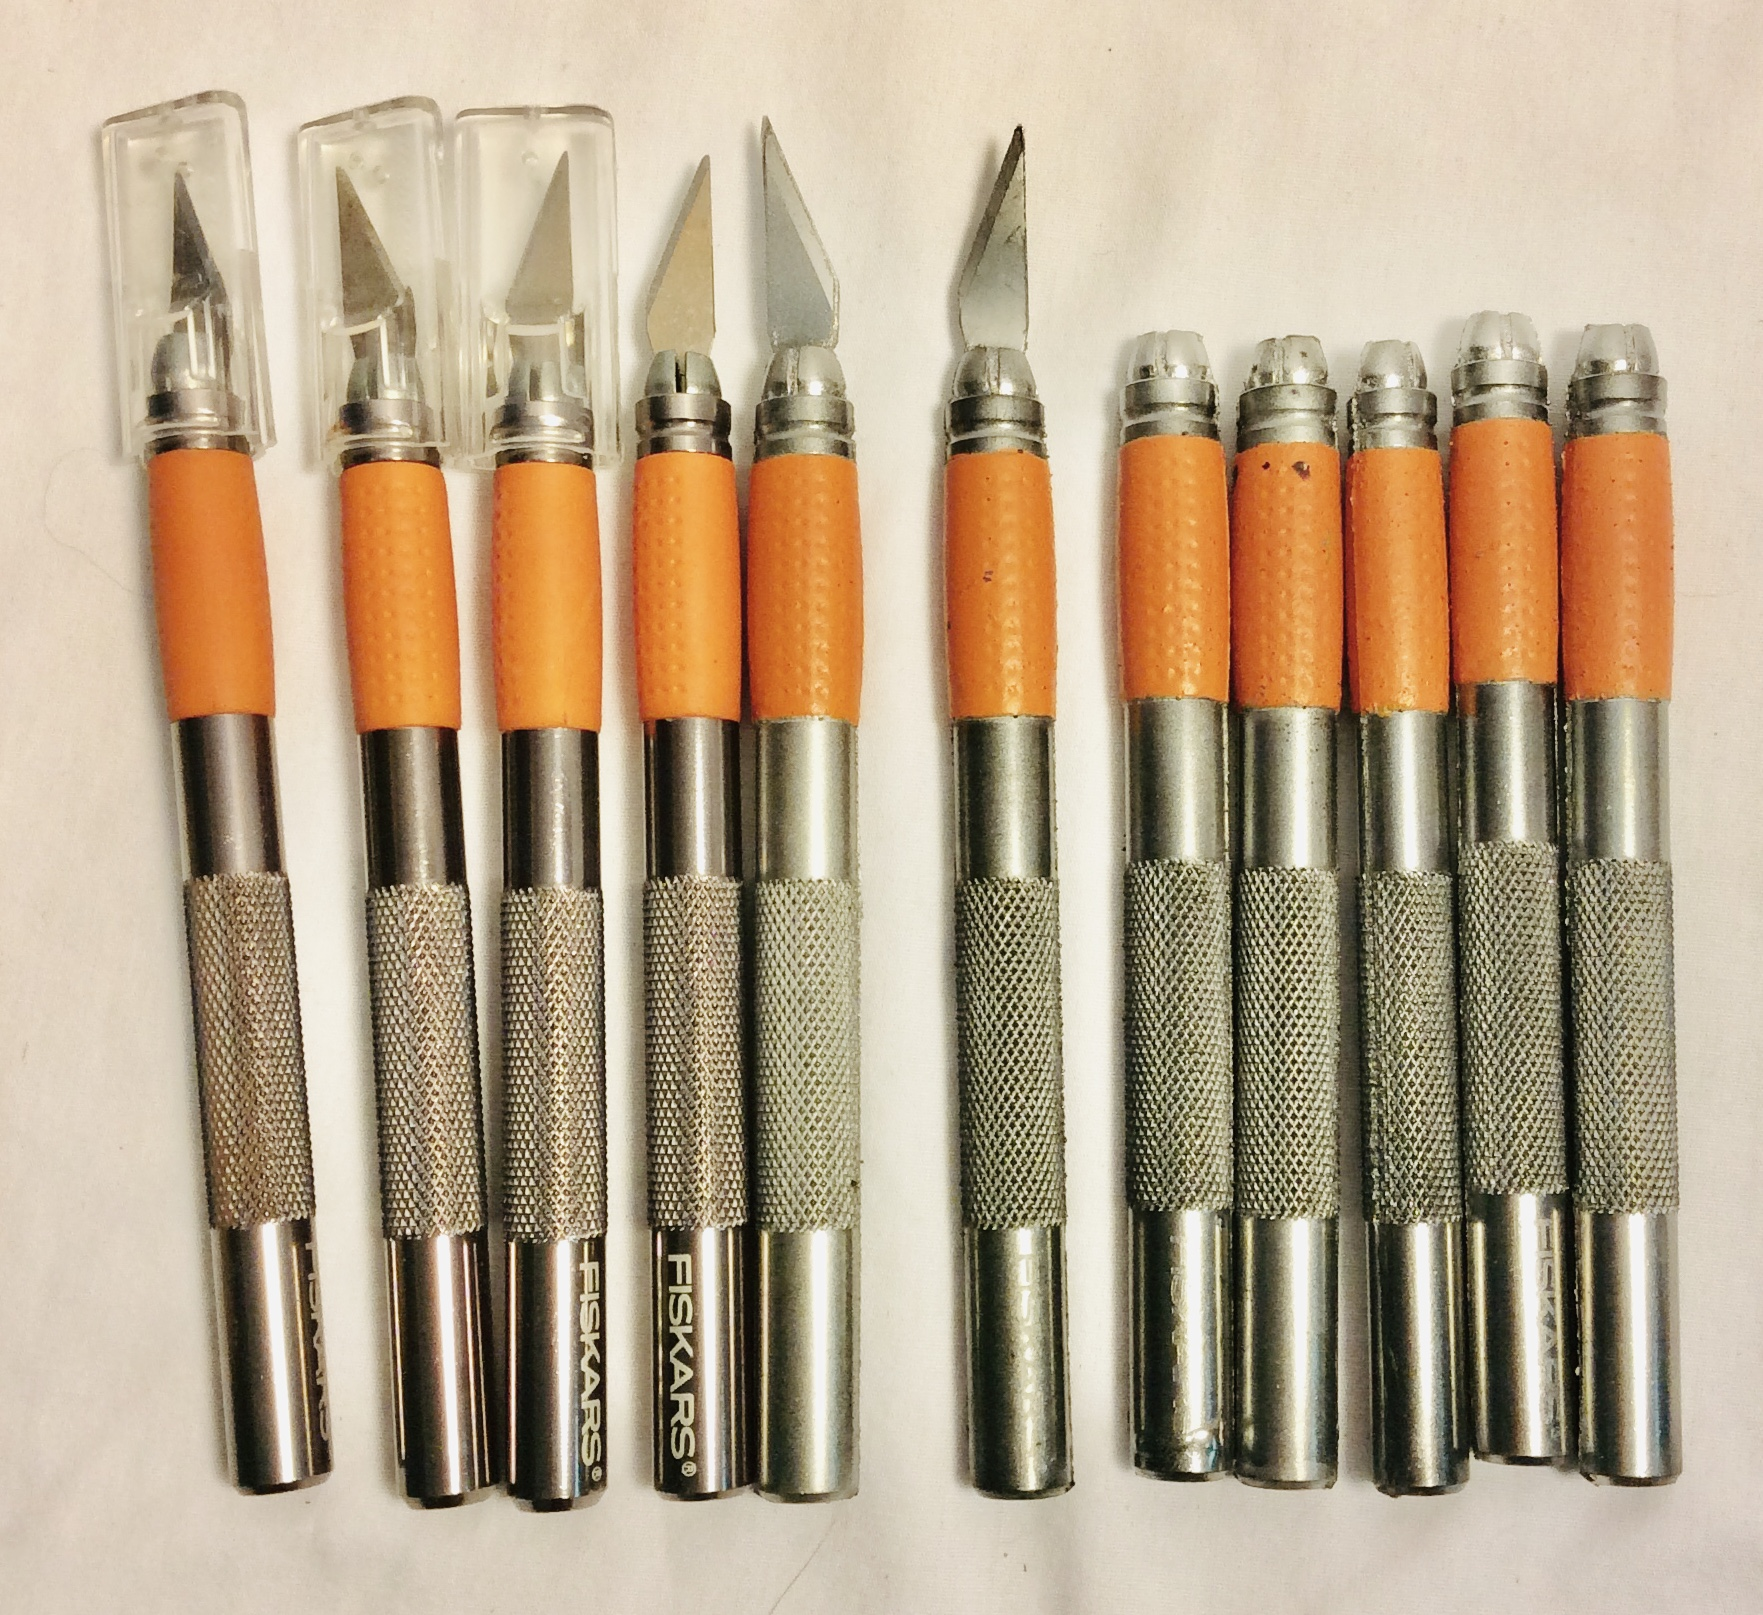 silver and orange x-acto knives (x7 rubber blades, x4 dulled, x2 boxes of sharp blades) x11